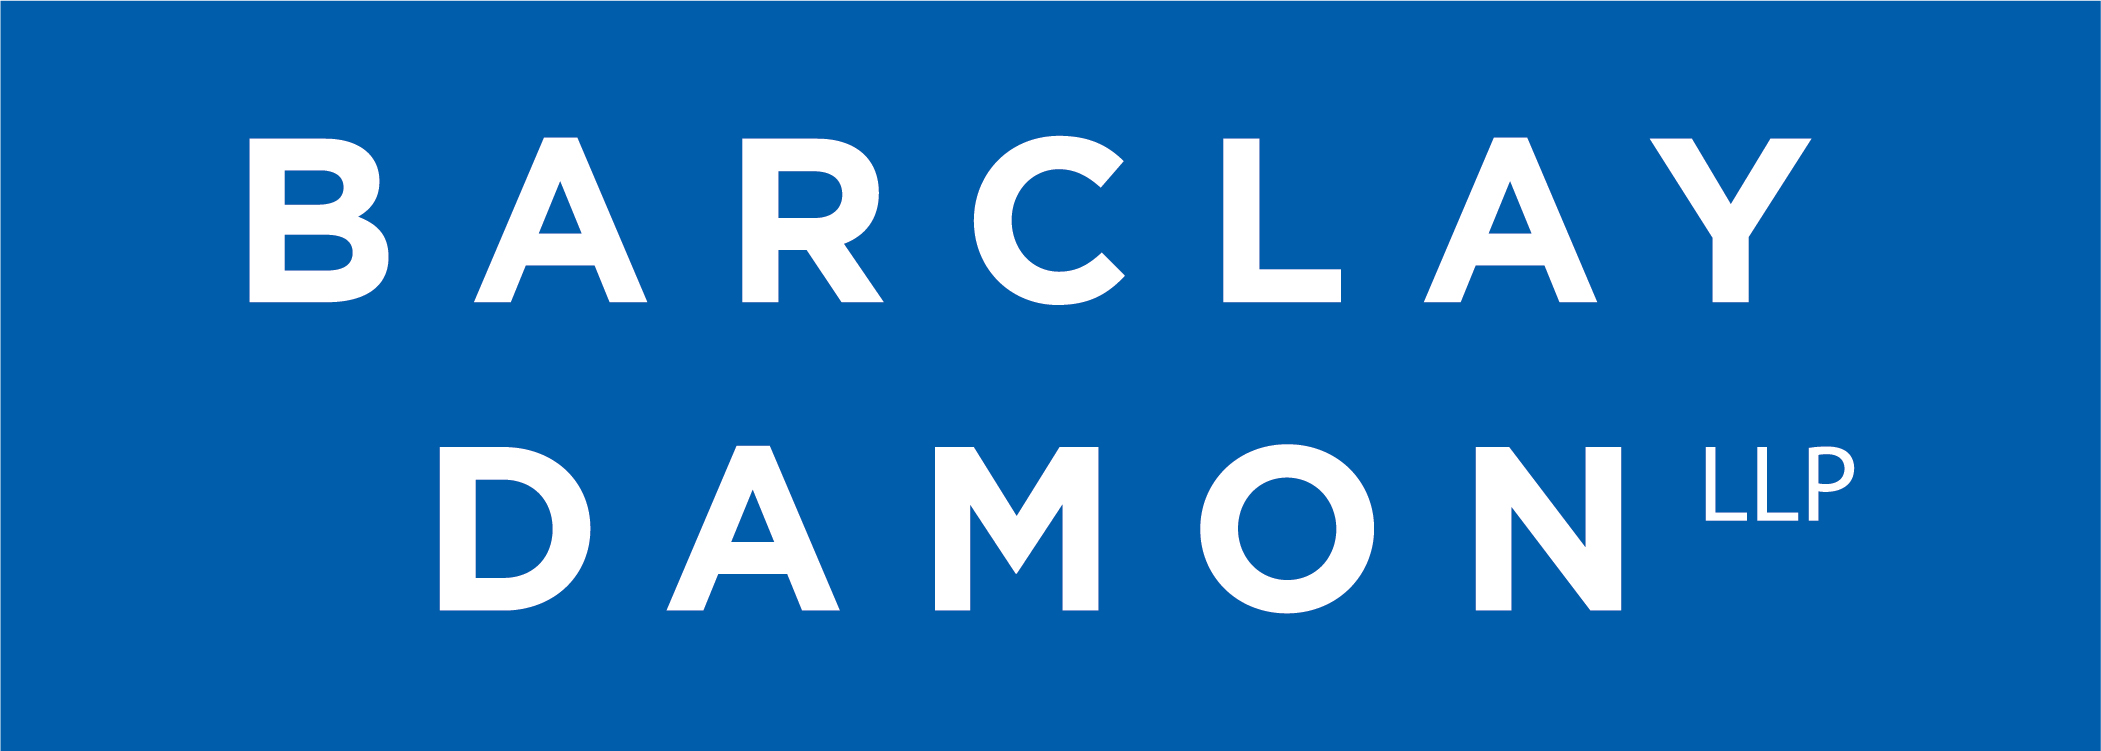 Barclay Damon LLP_Stacked Logo White on Blue